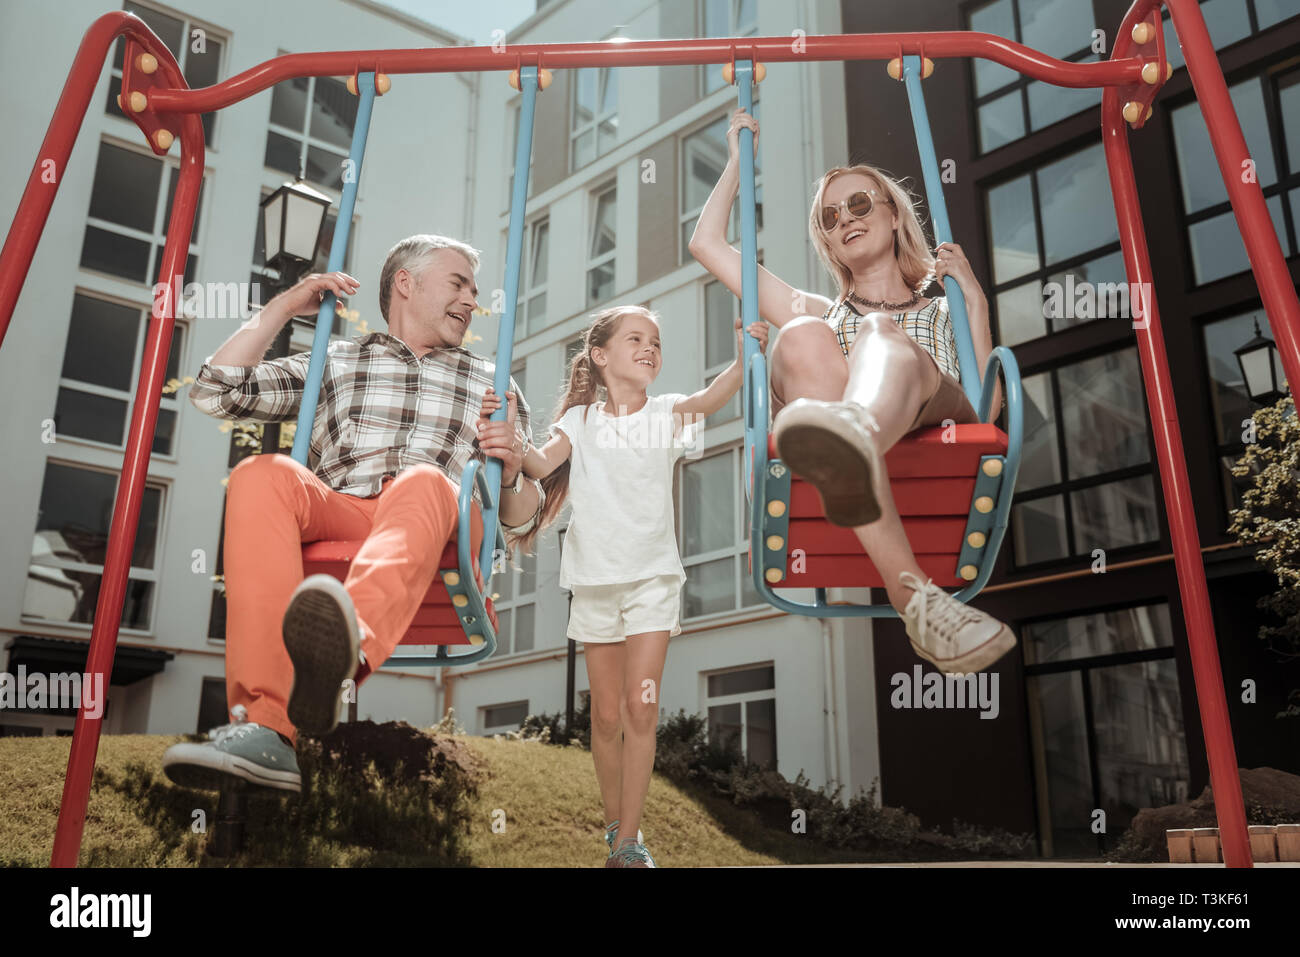 Happy delighted parents sitting on the swings - Stock Image